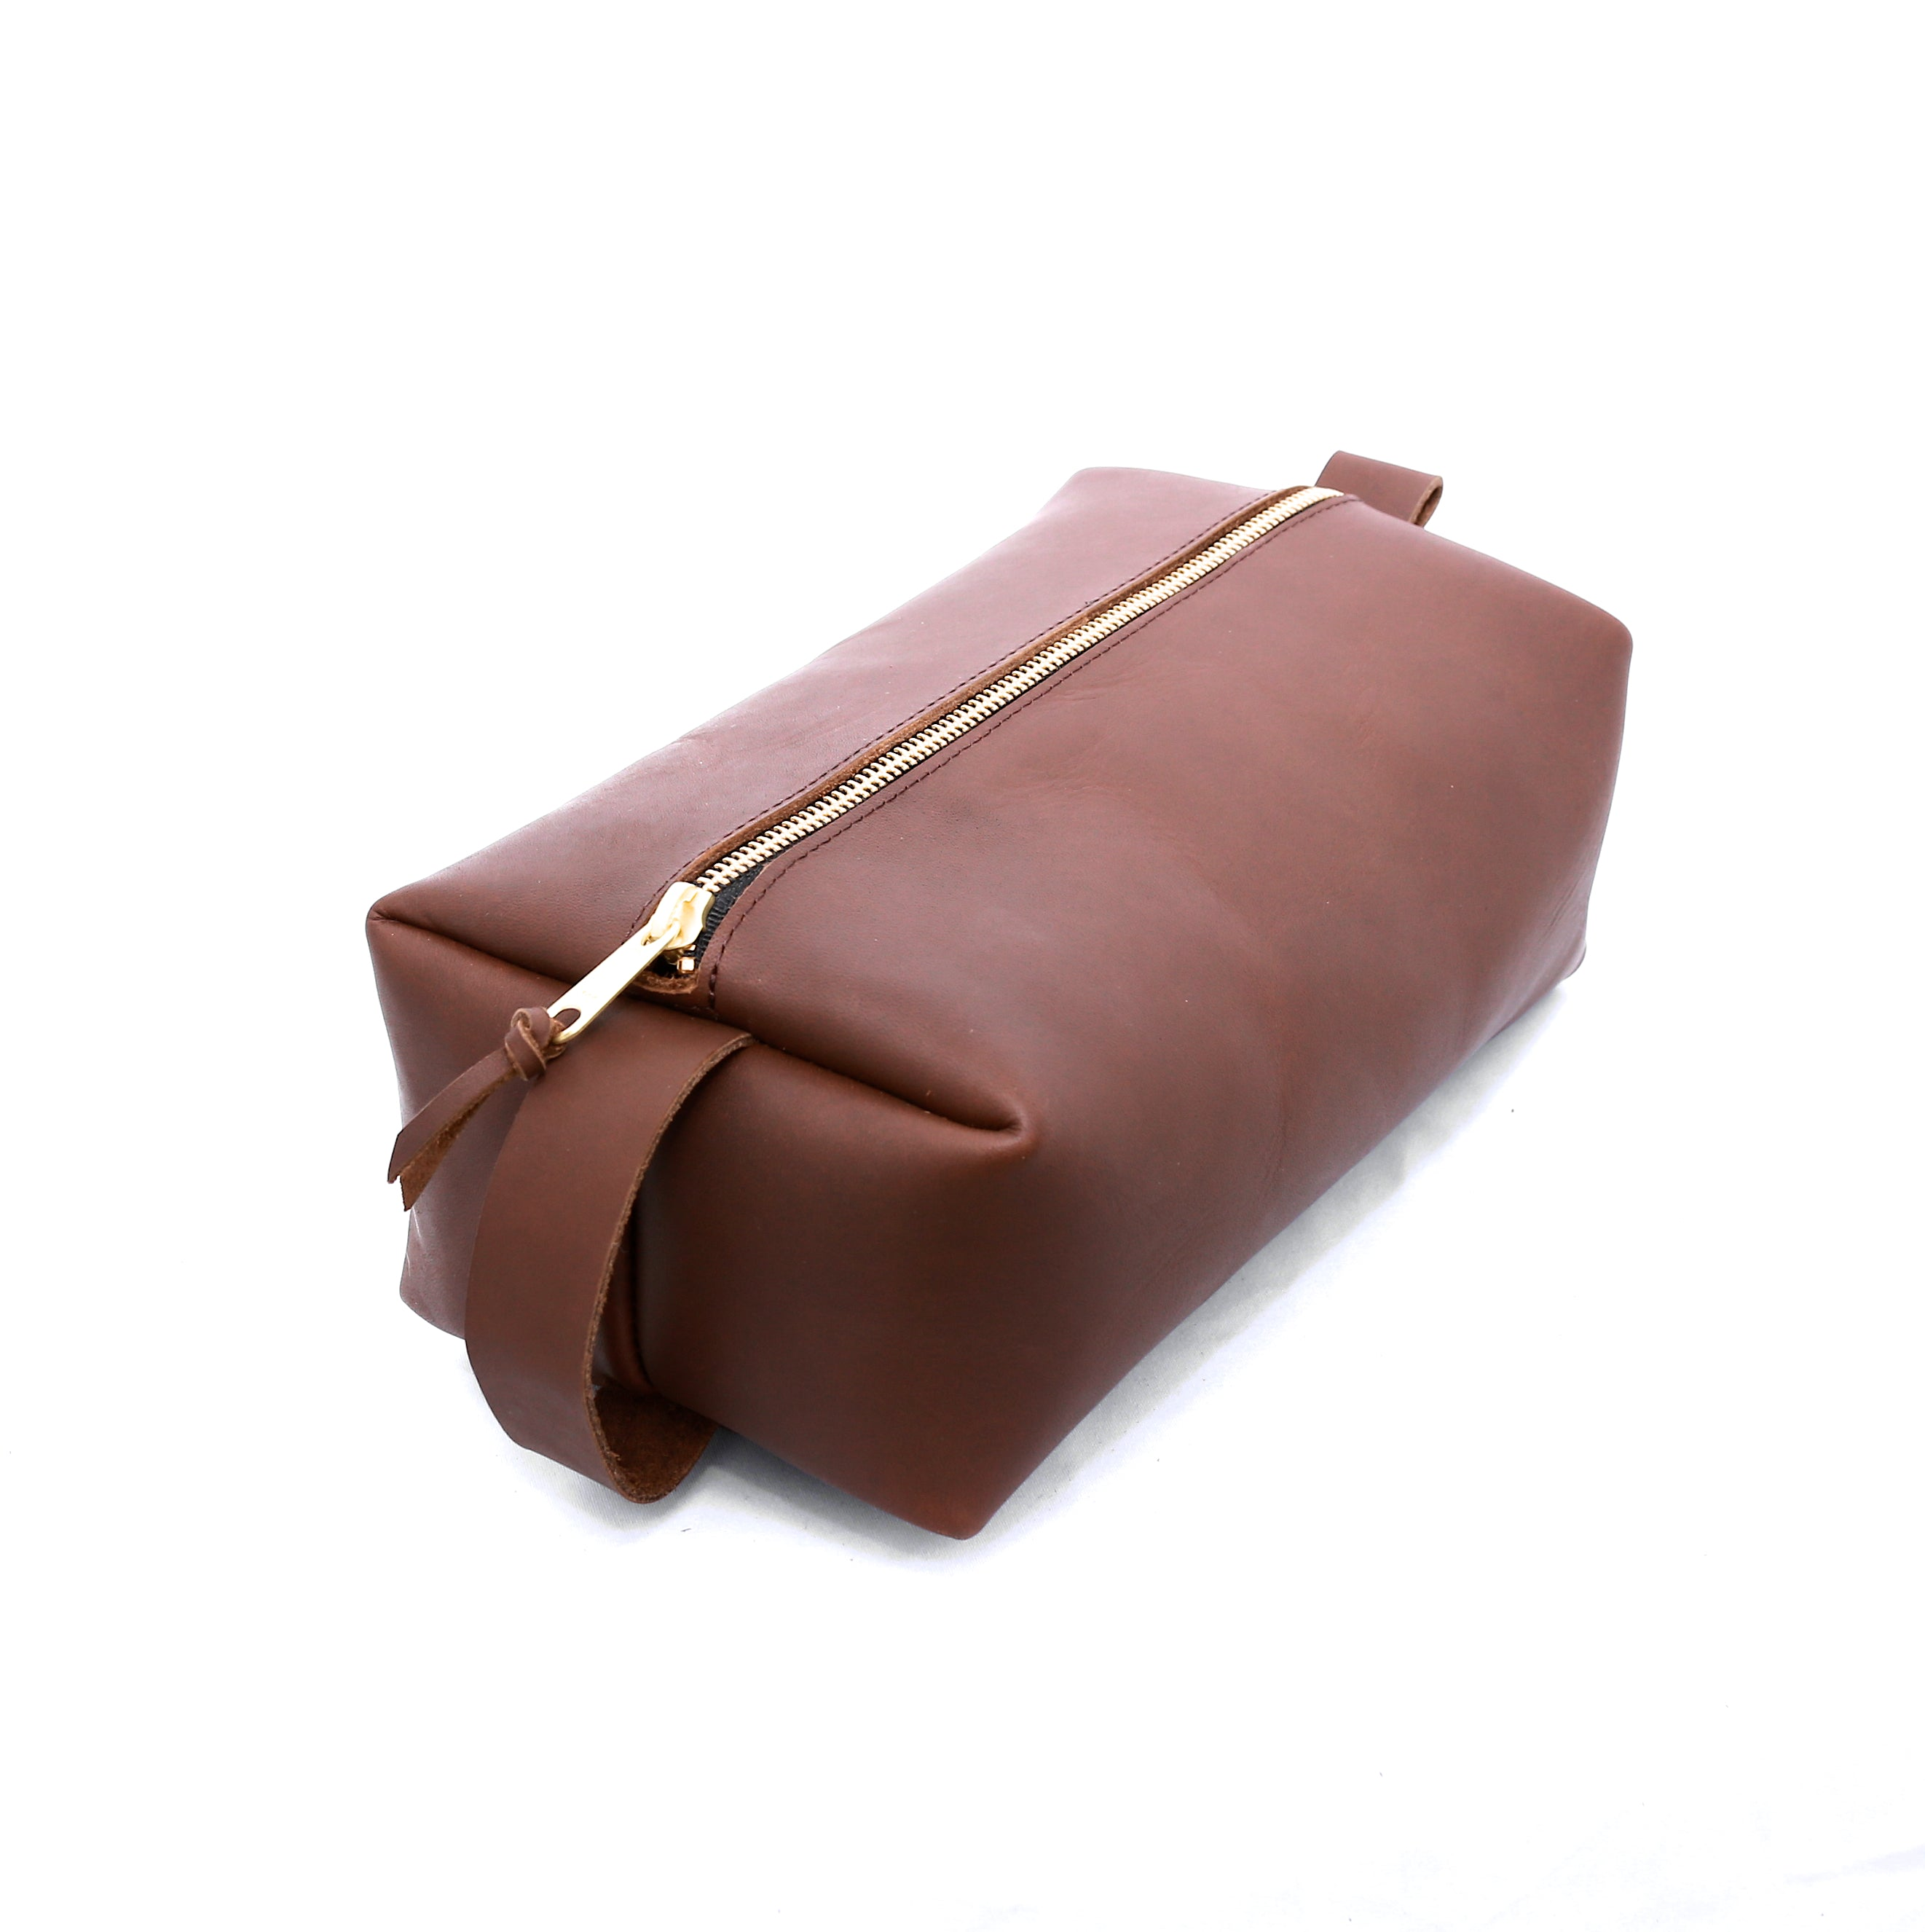 Dopp Kit Leather - handcrafted by Market Canvas Leather in Tofino, BC, Canada